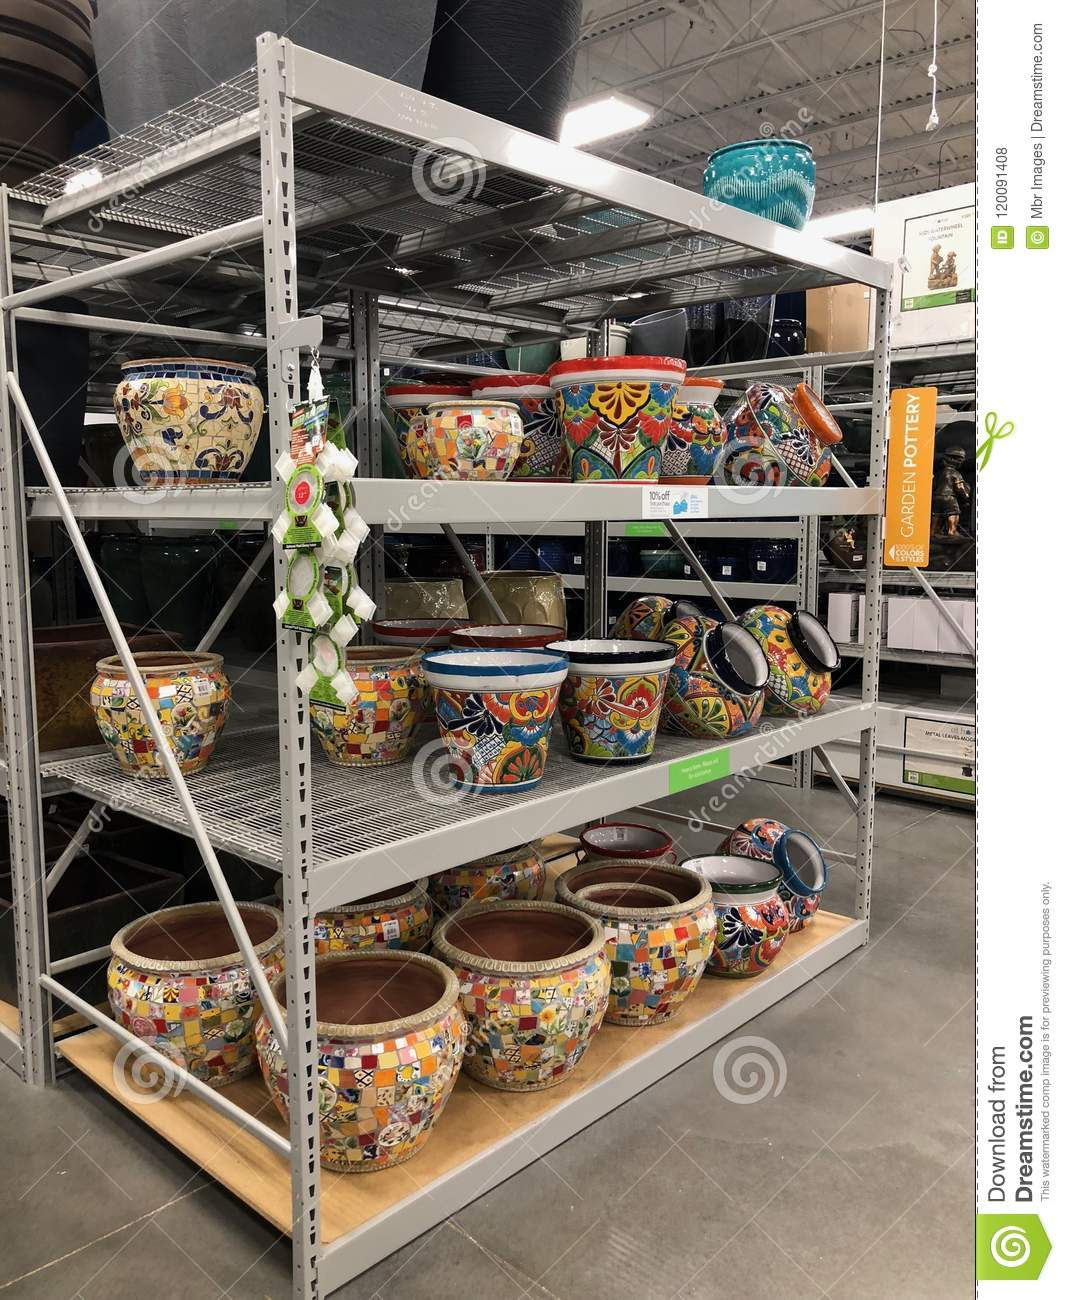 specialty kitchen stores white corner cabinet at home editorial stock photo image of 120091408 the retailer s each carry over 50 000 unique items across broad product categories store is in gilbert arizona